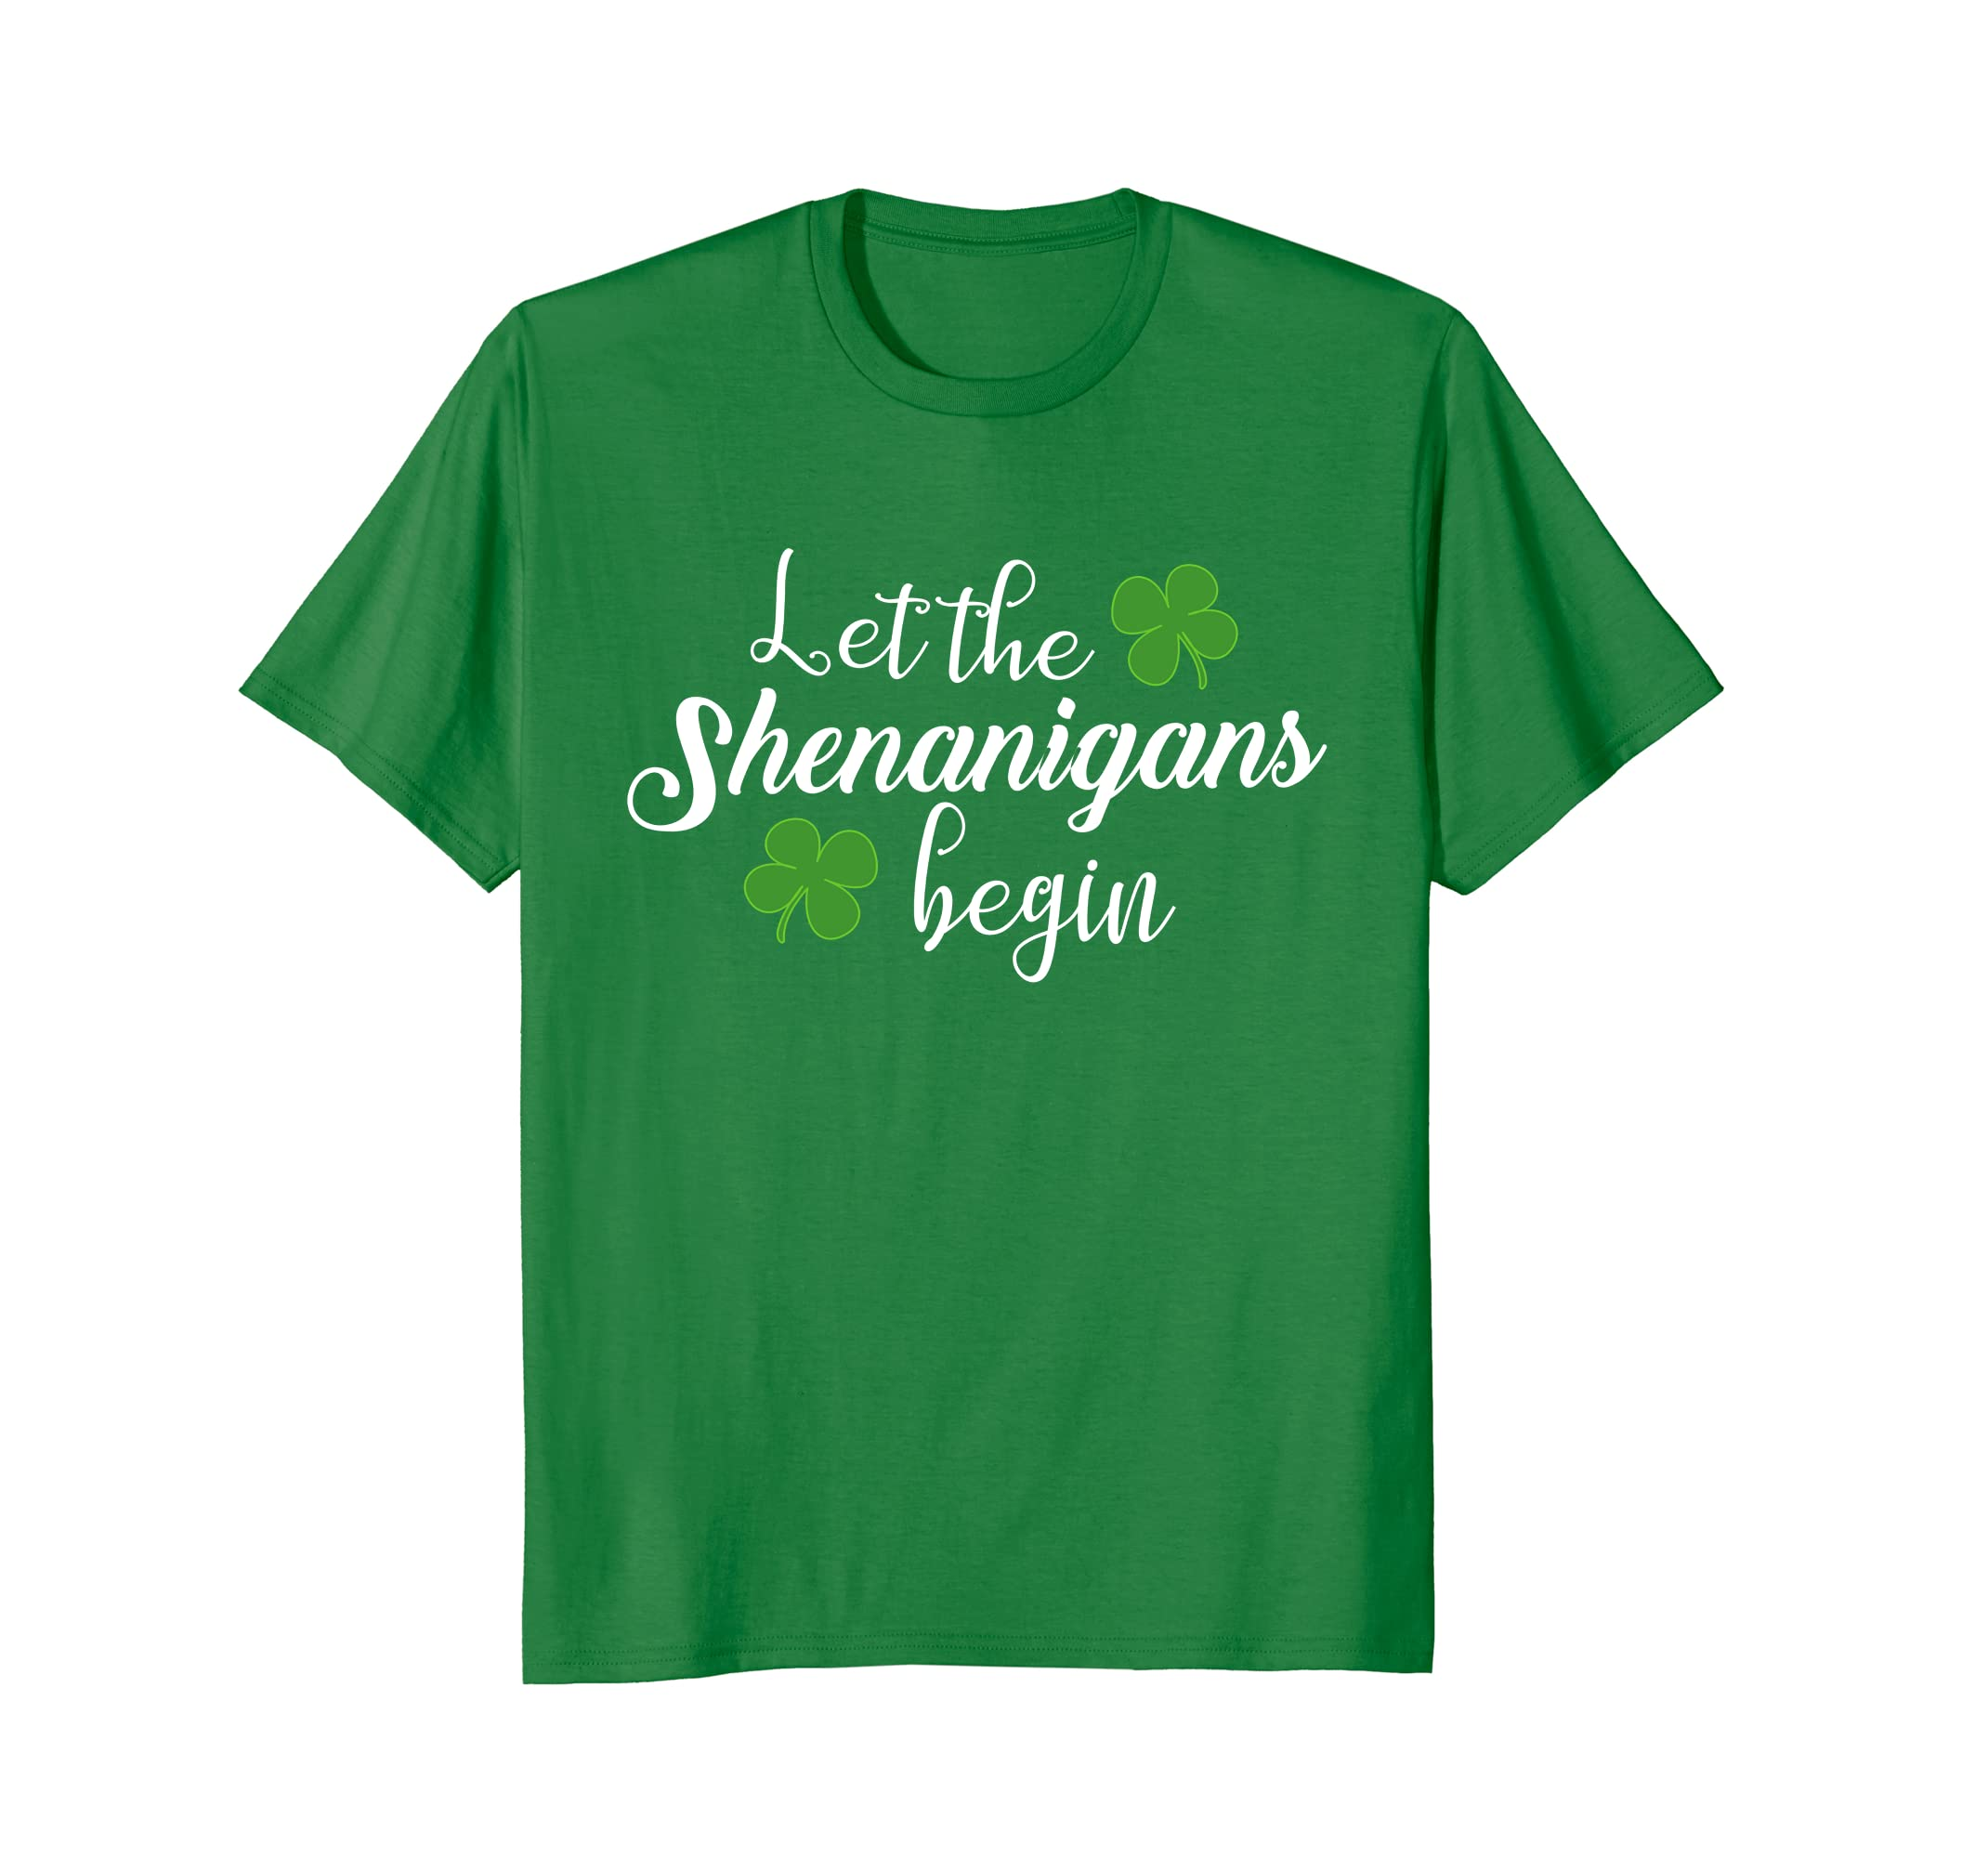 61e93435d299a1 Amazon.com  Let The Shenanigans Begin - St Patrick s Day Shirt  Clothing